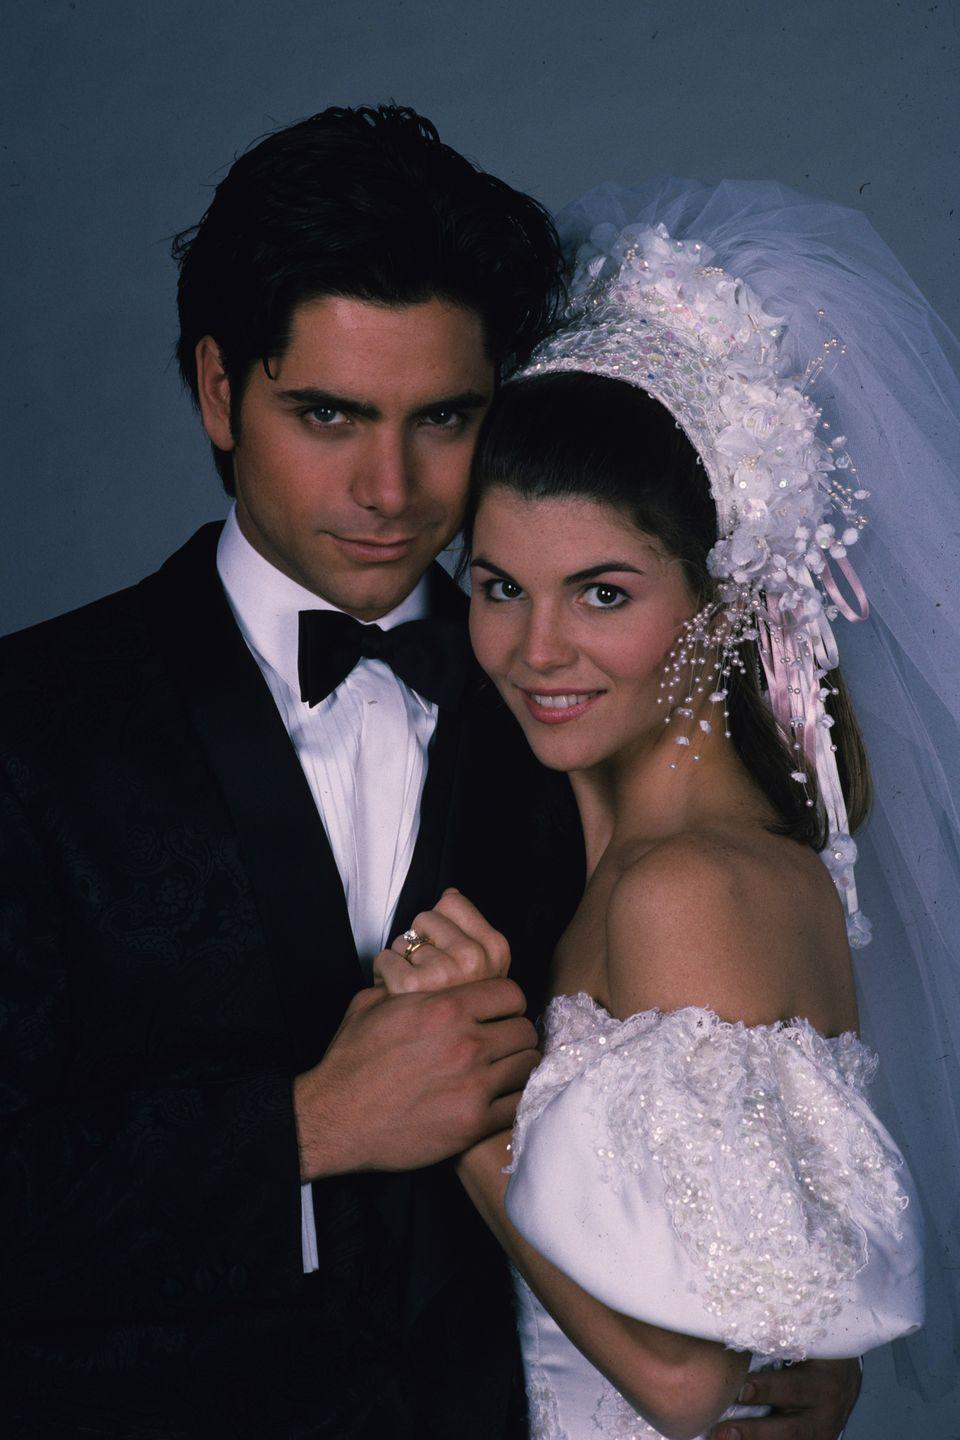 <p>Becky and Jesse were a couple just meant to be on <em>Full House – </em>Jesse was the motorcycle jacket-wearing ladies' man while Becky was the put-together news show host. The pair tied the knot in season 4, when Becky wore this off-the-shoulder puff-sleeve gown. </p>